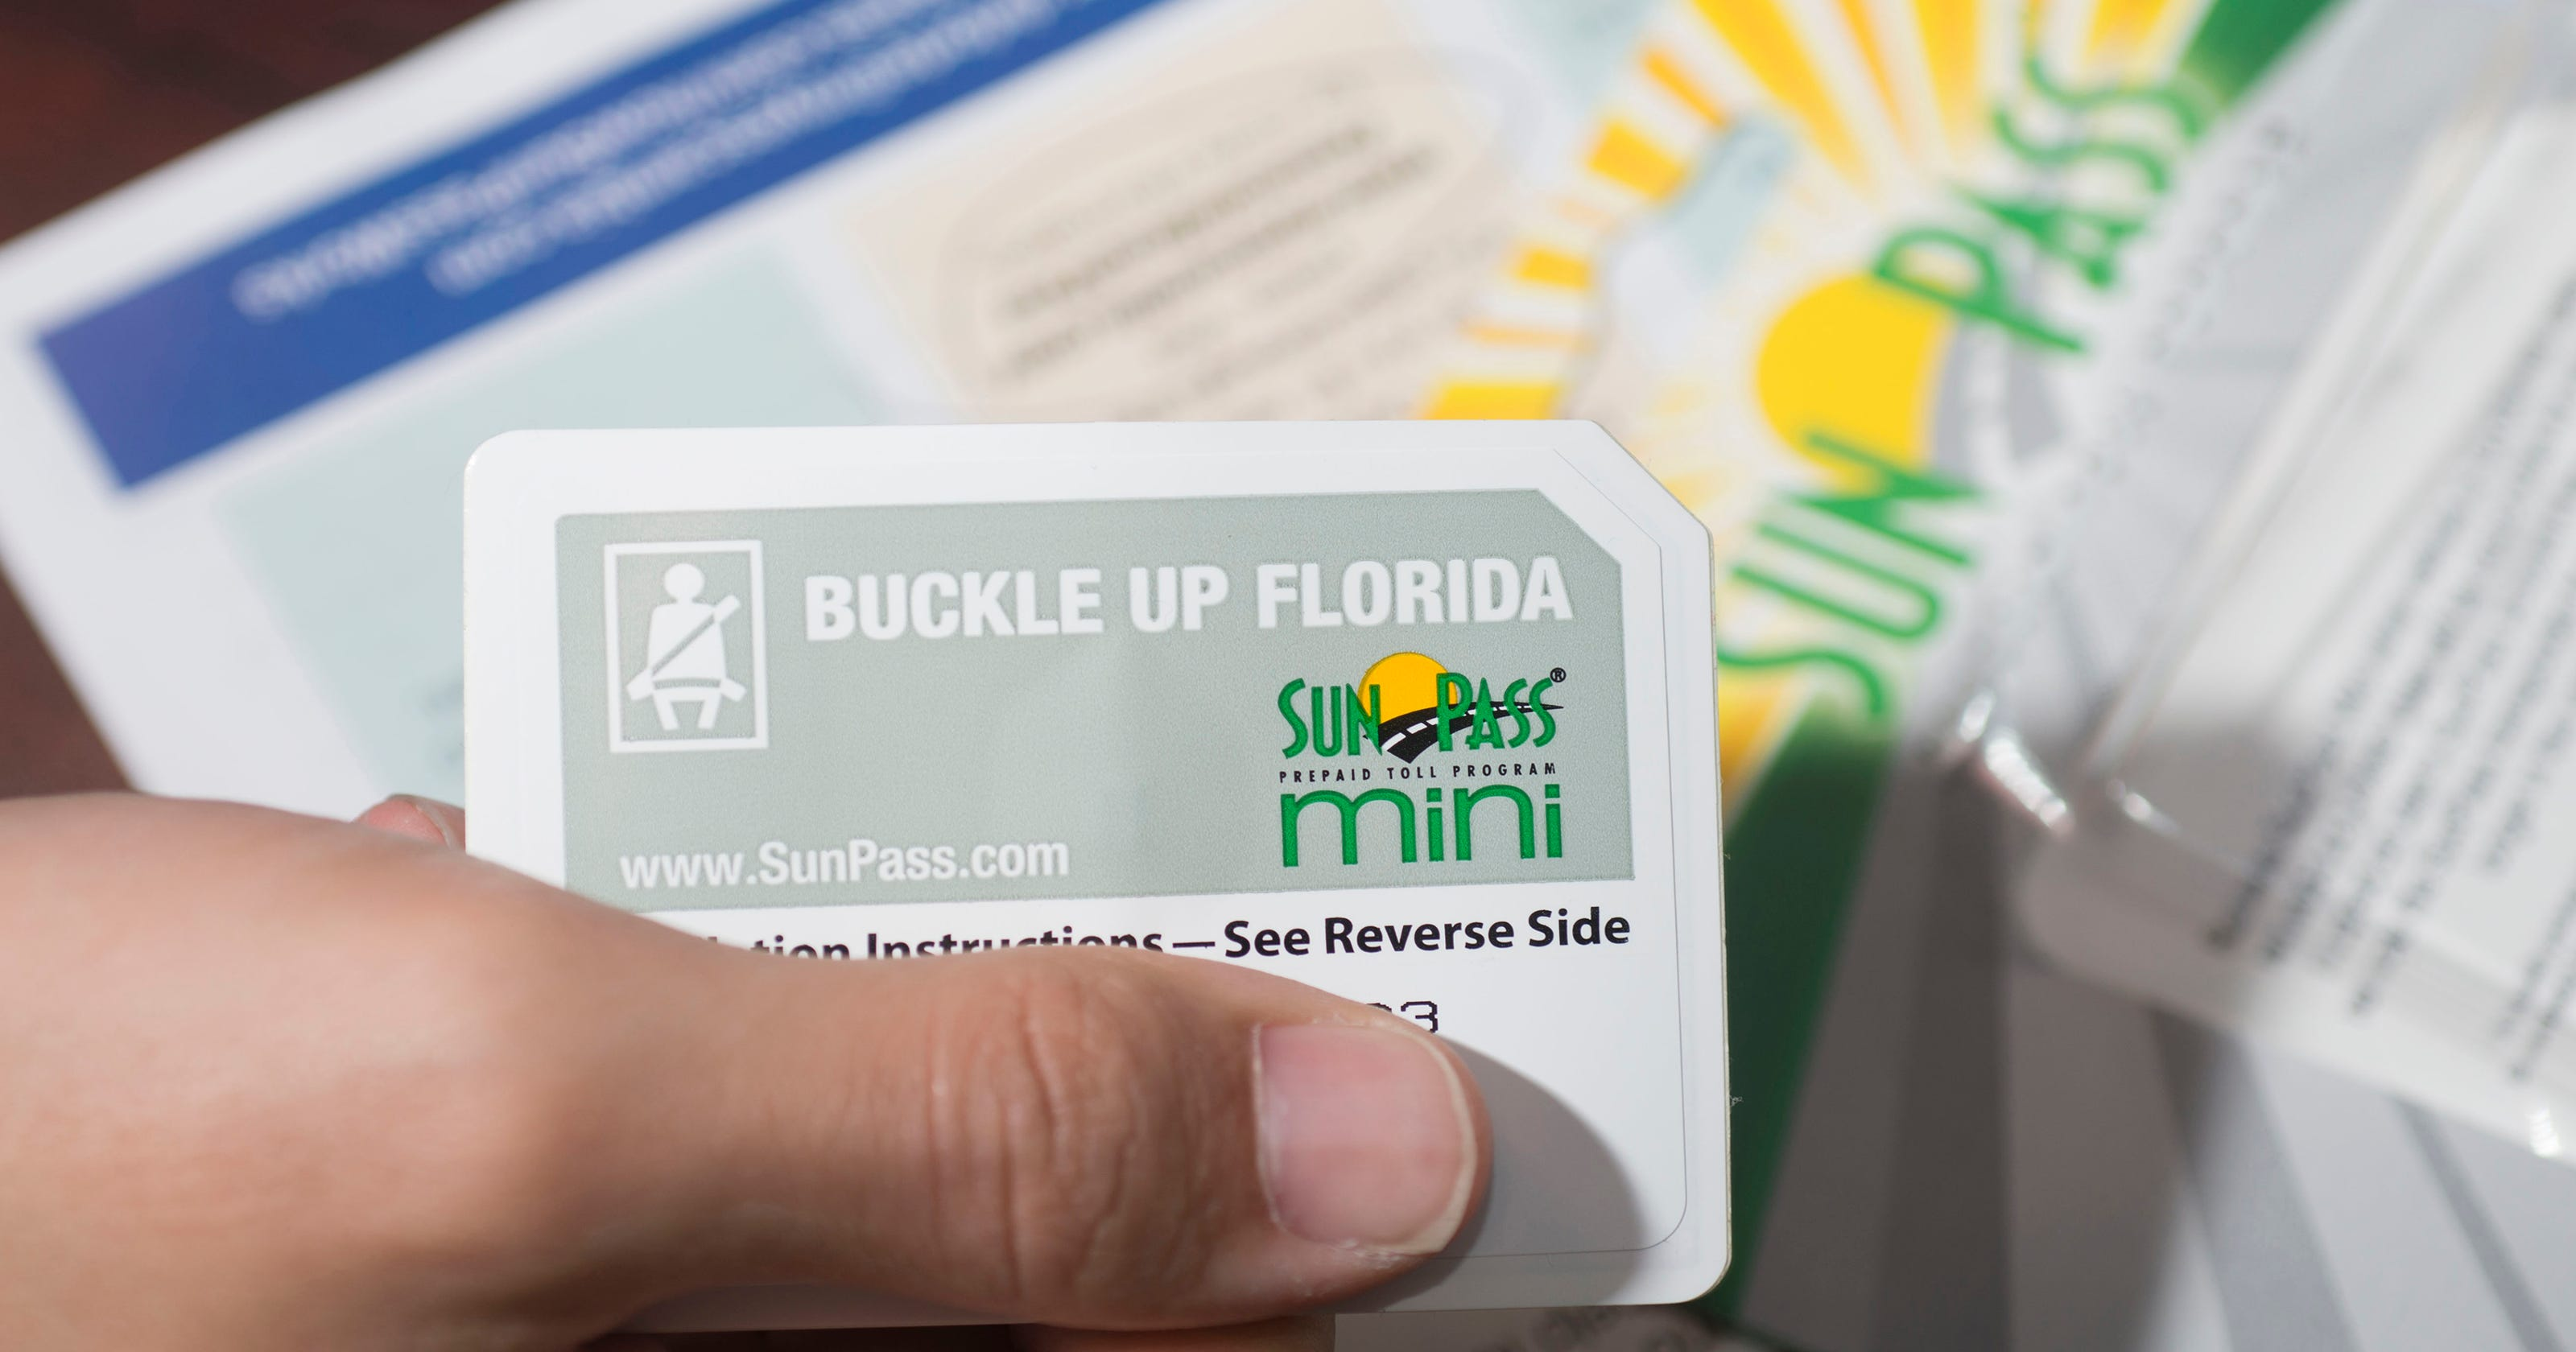 Frequent beach visitors scramble to meet SunPass deadline